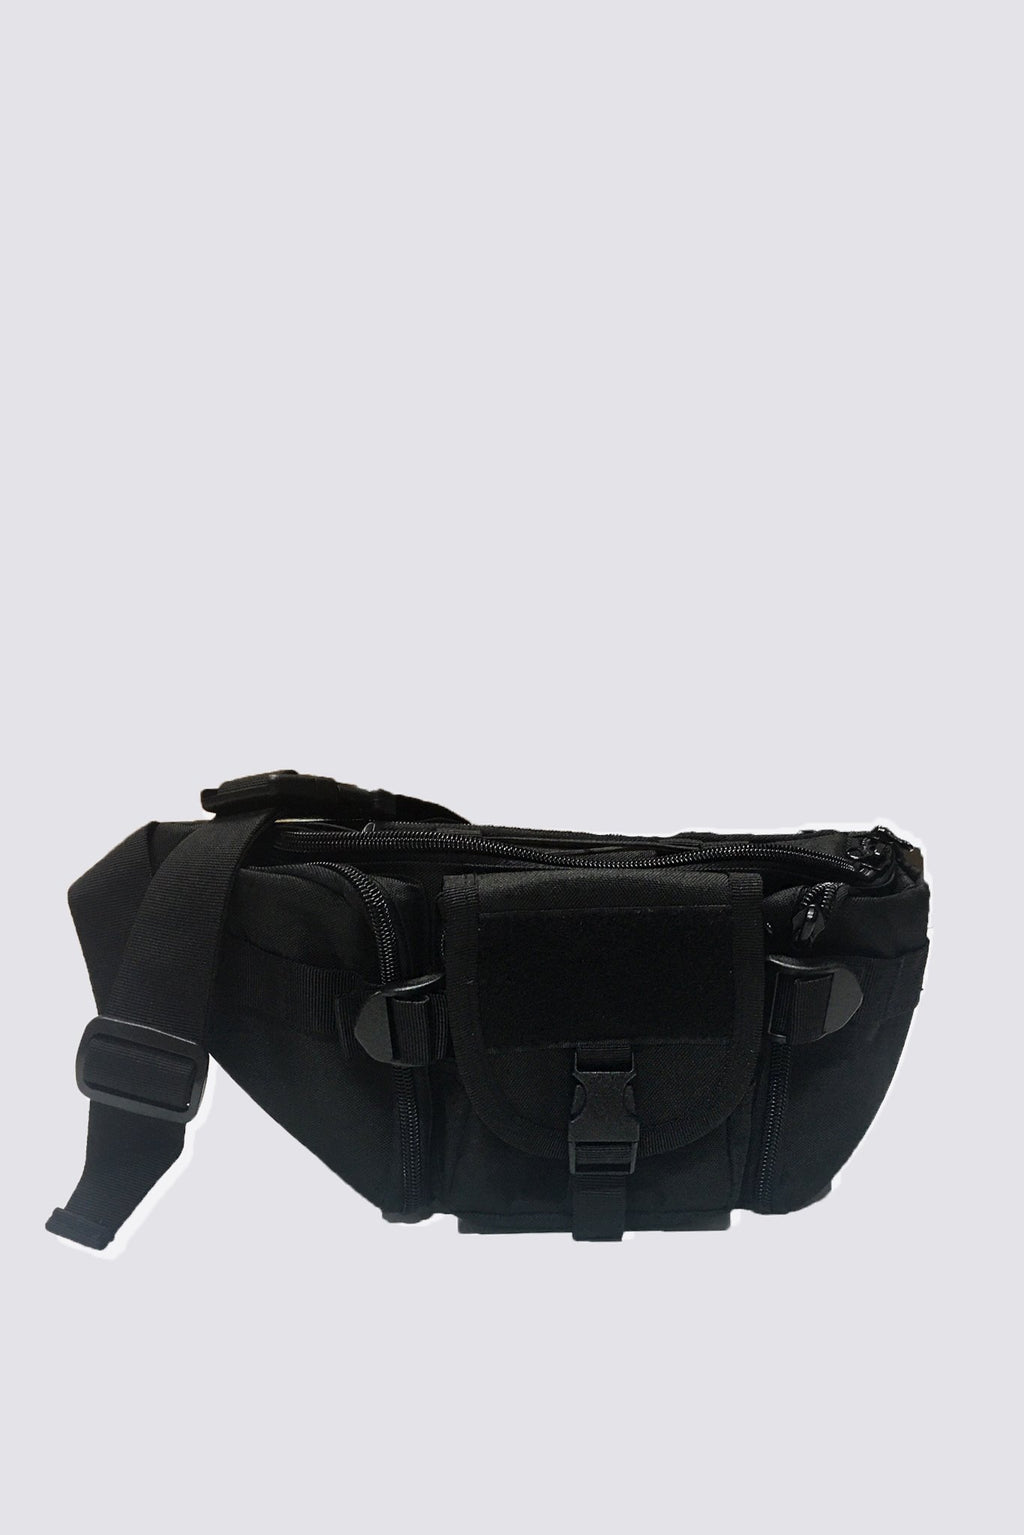 Black Nylon Waist Bag